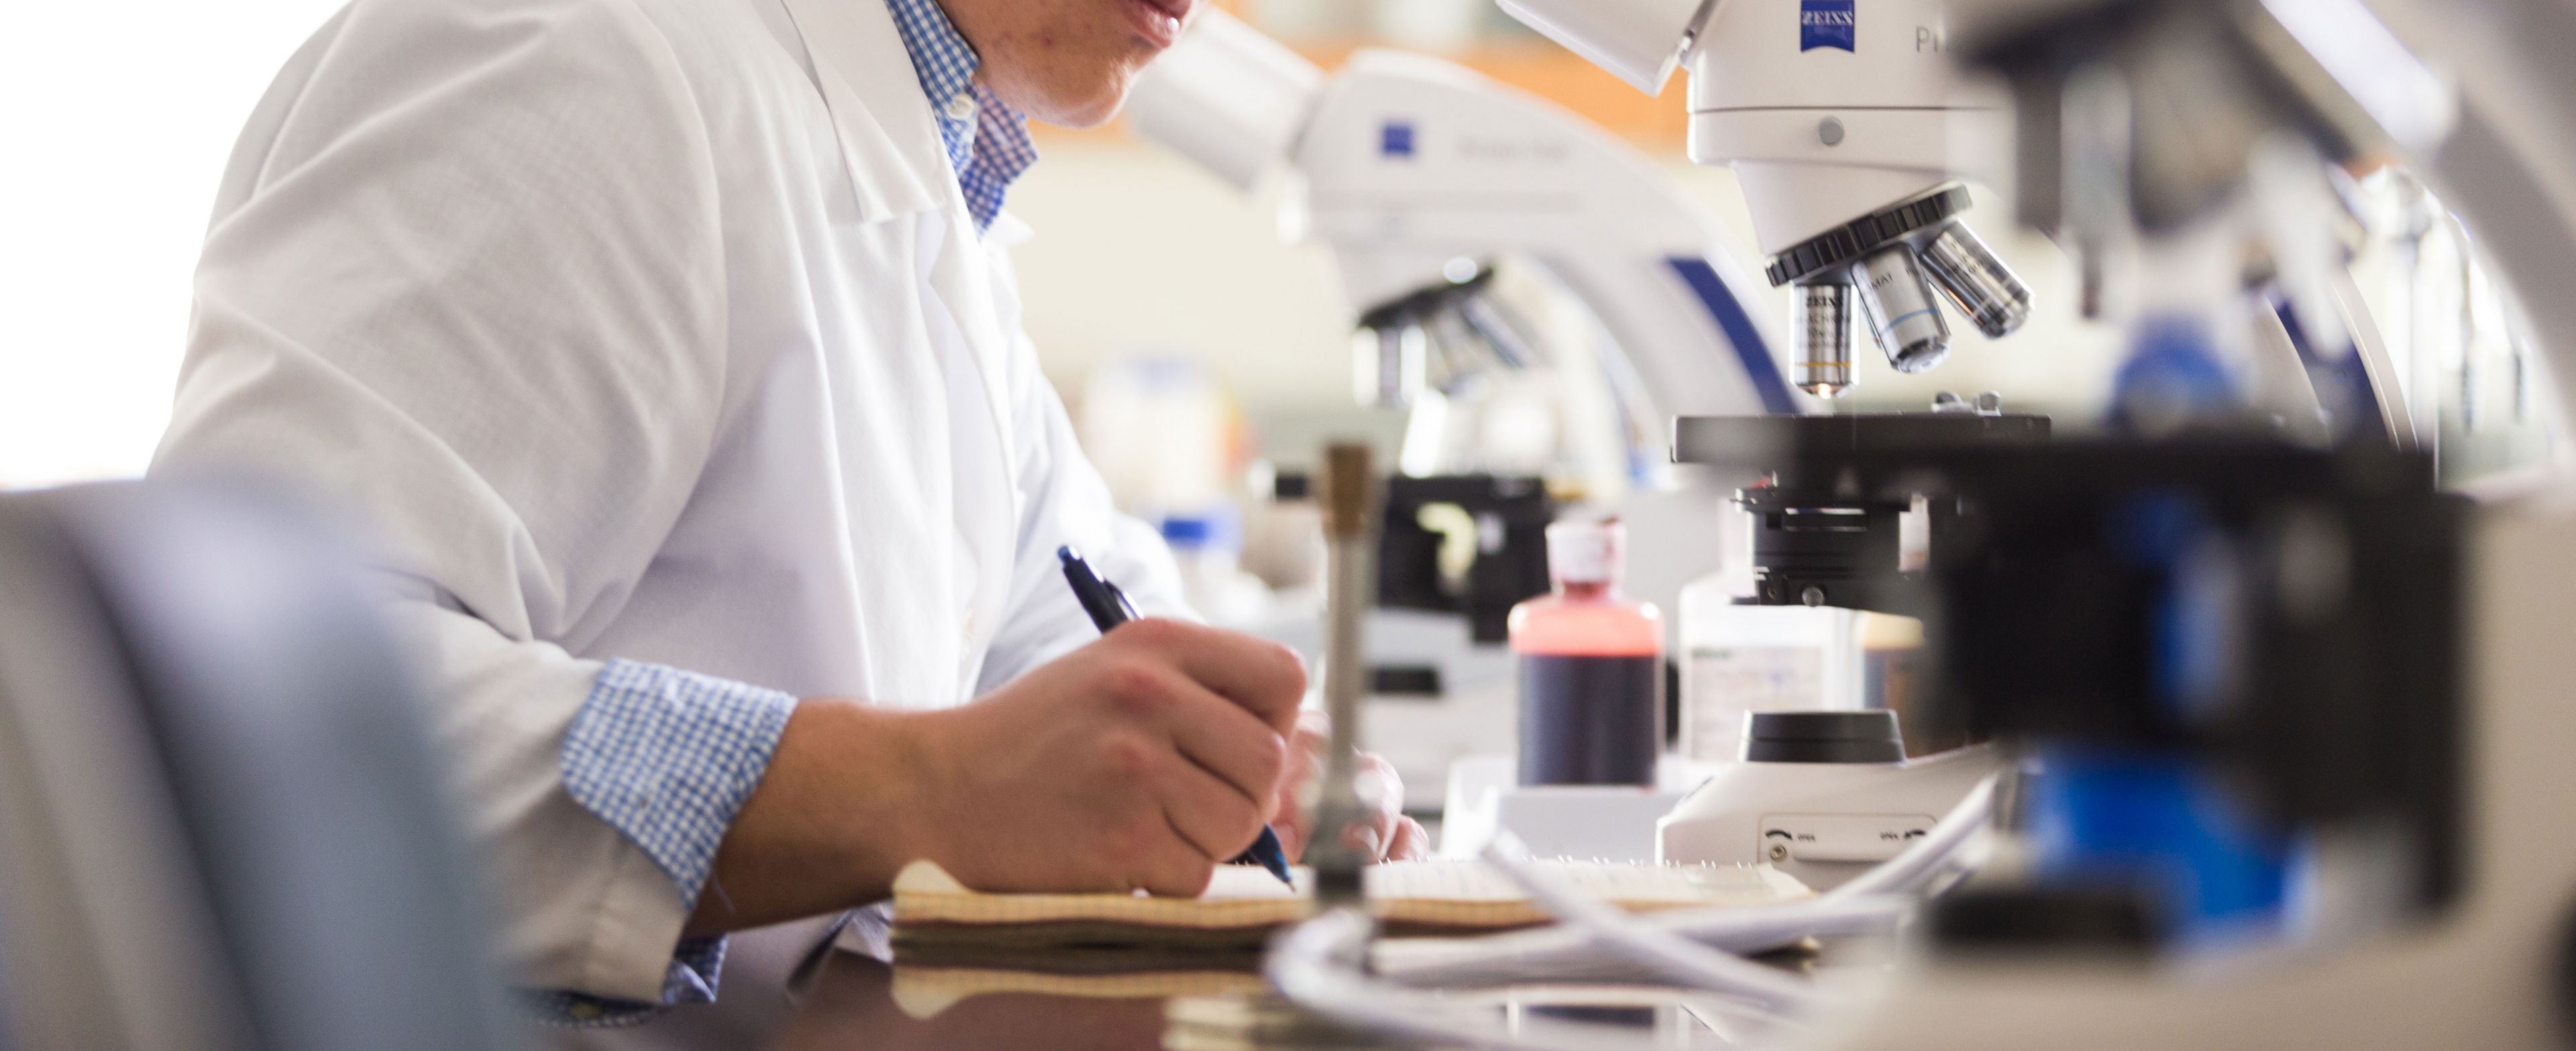 Master of Science in Biomedical Sciences - Liberty University Online